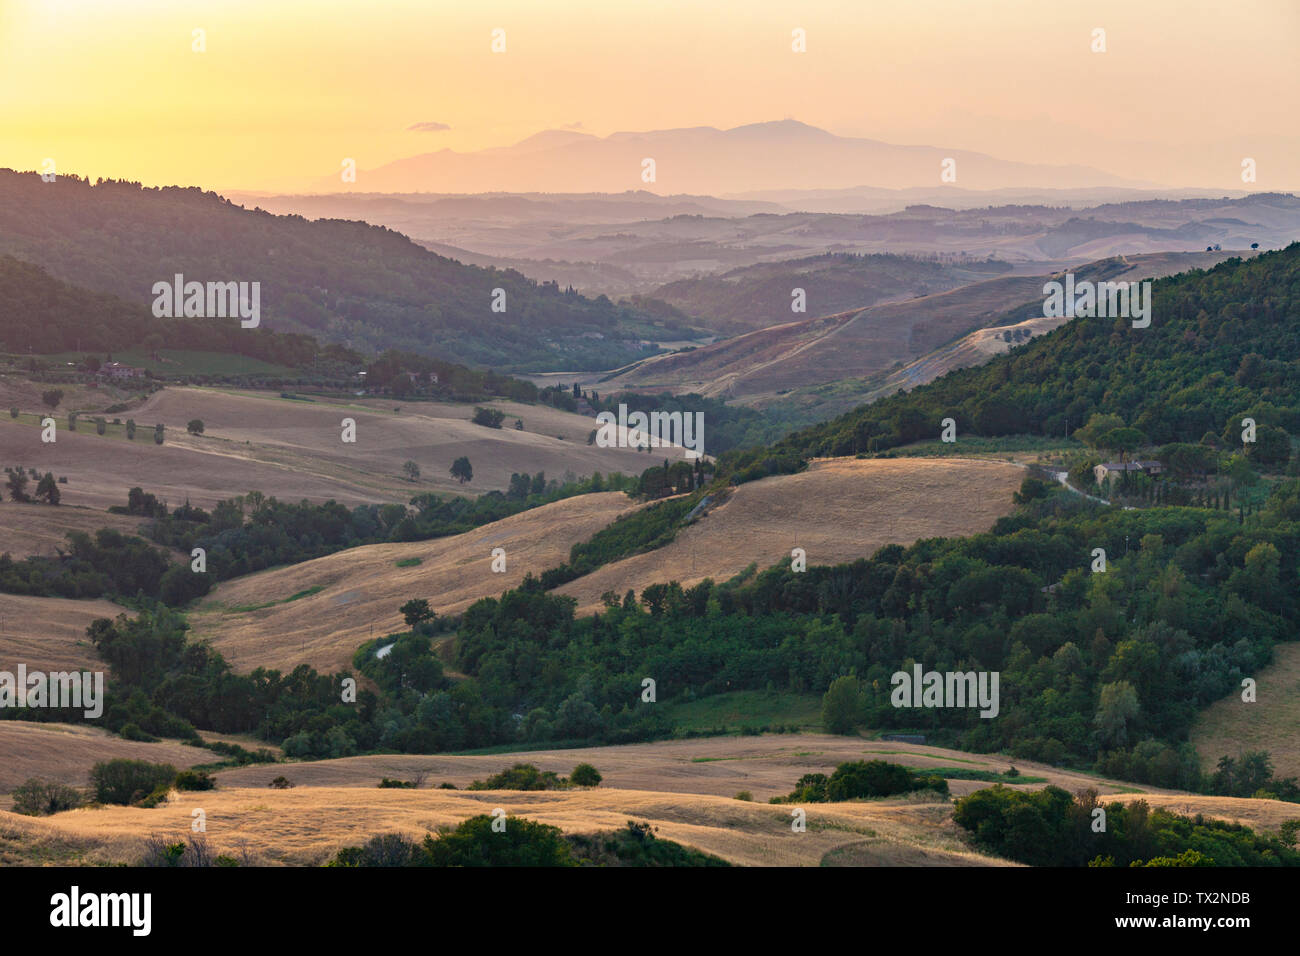 Landscape in Tuscany at sunset with hills and mountains and nice warm evening colors, Tuscany, Italy - Stock Image